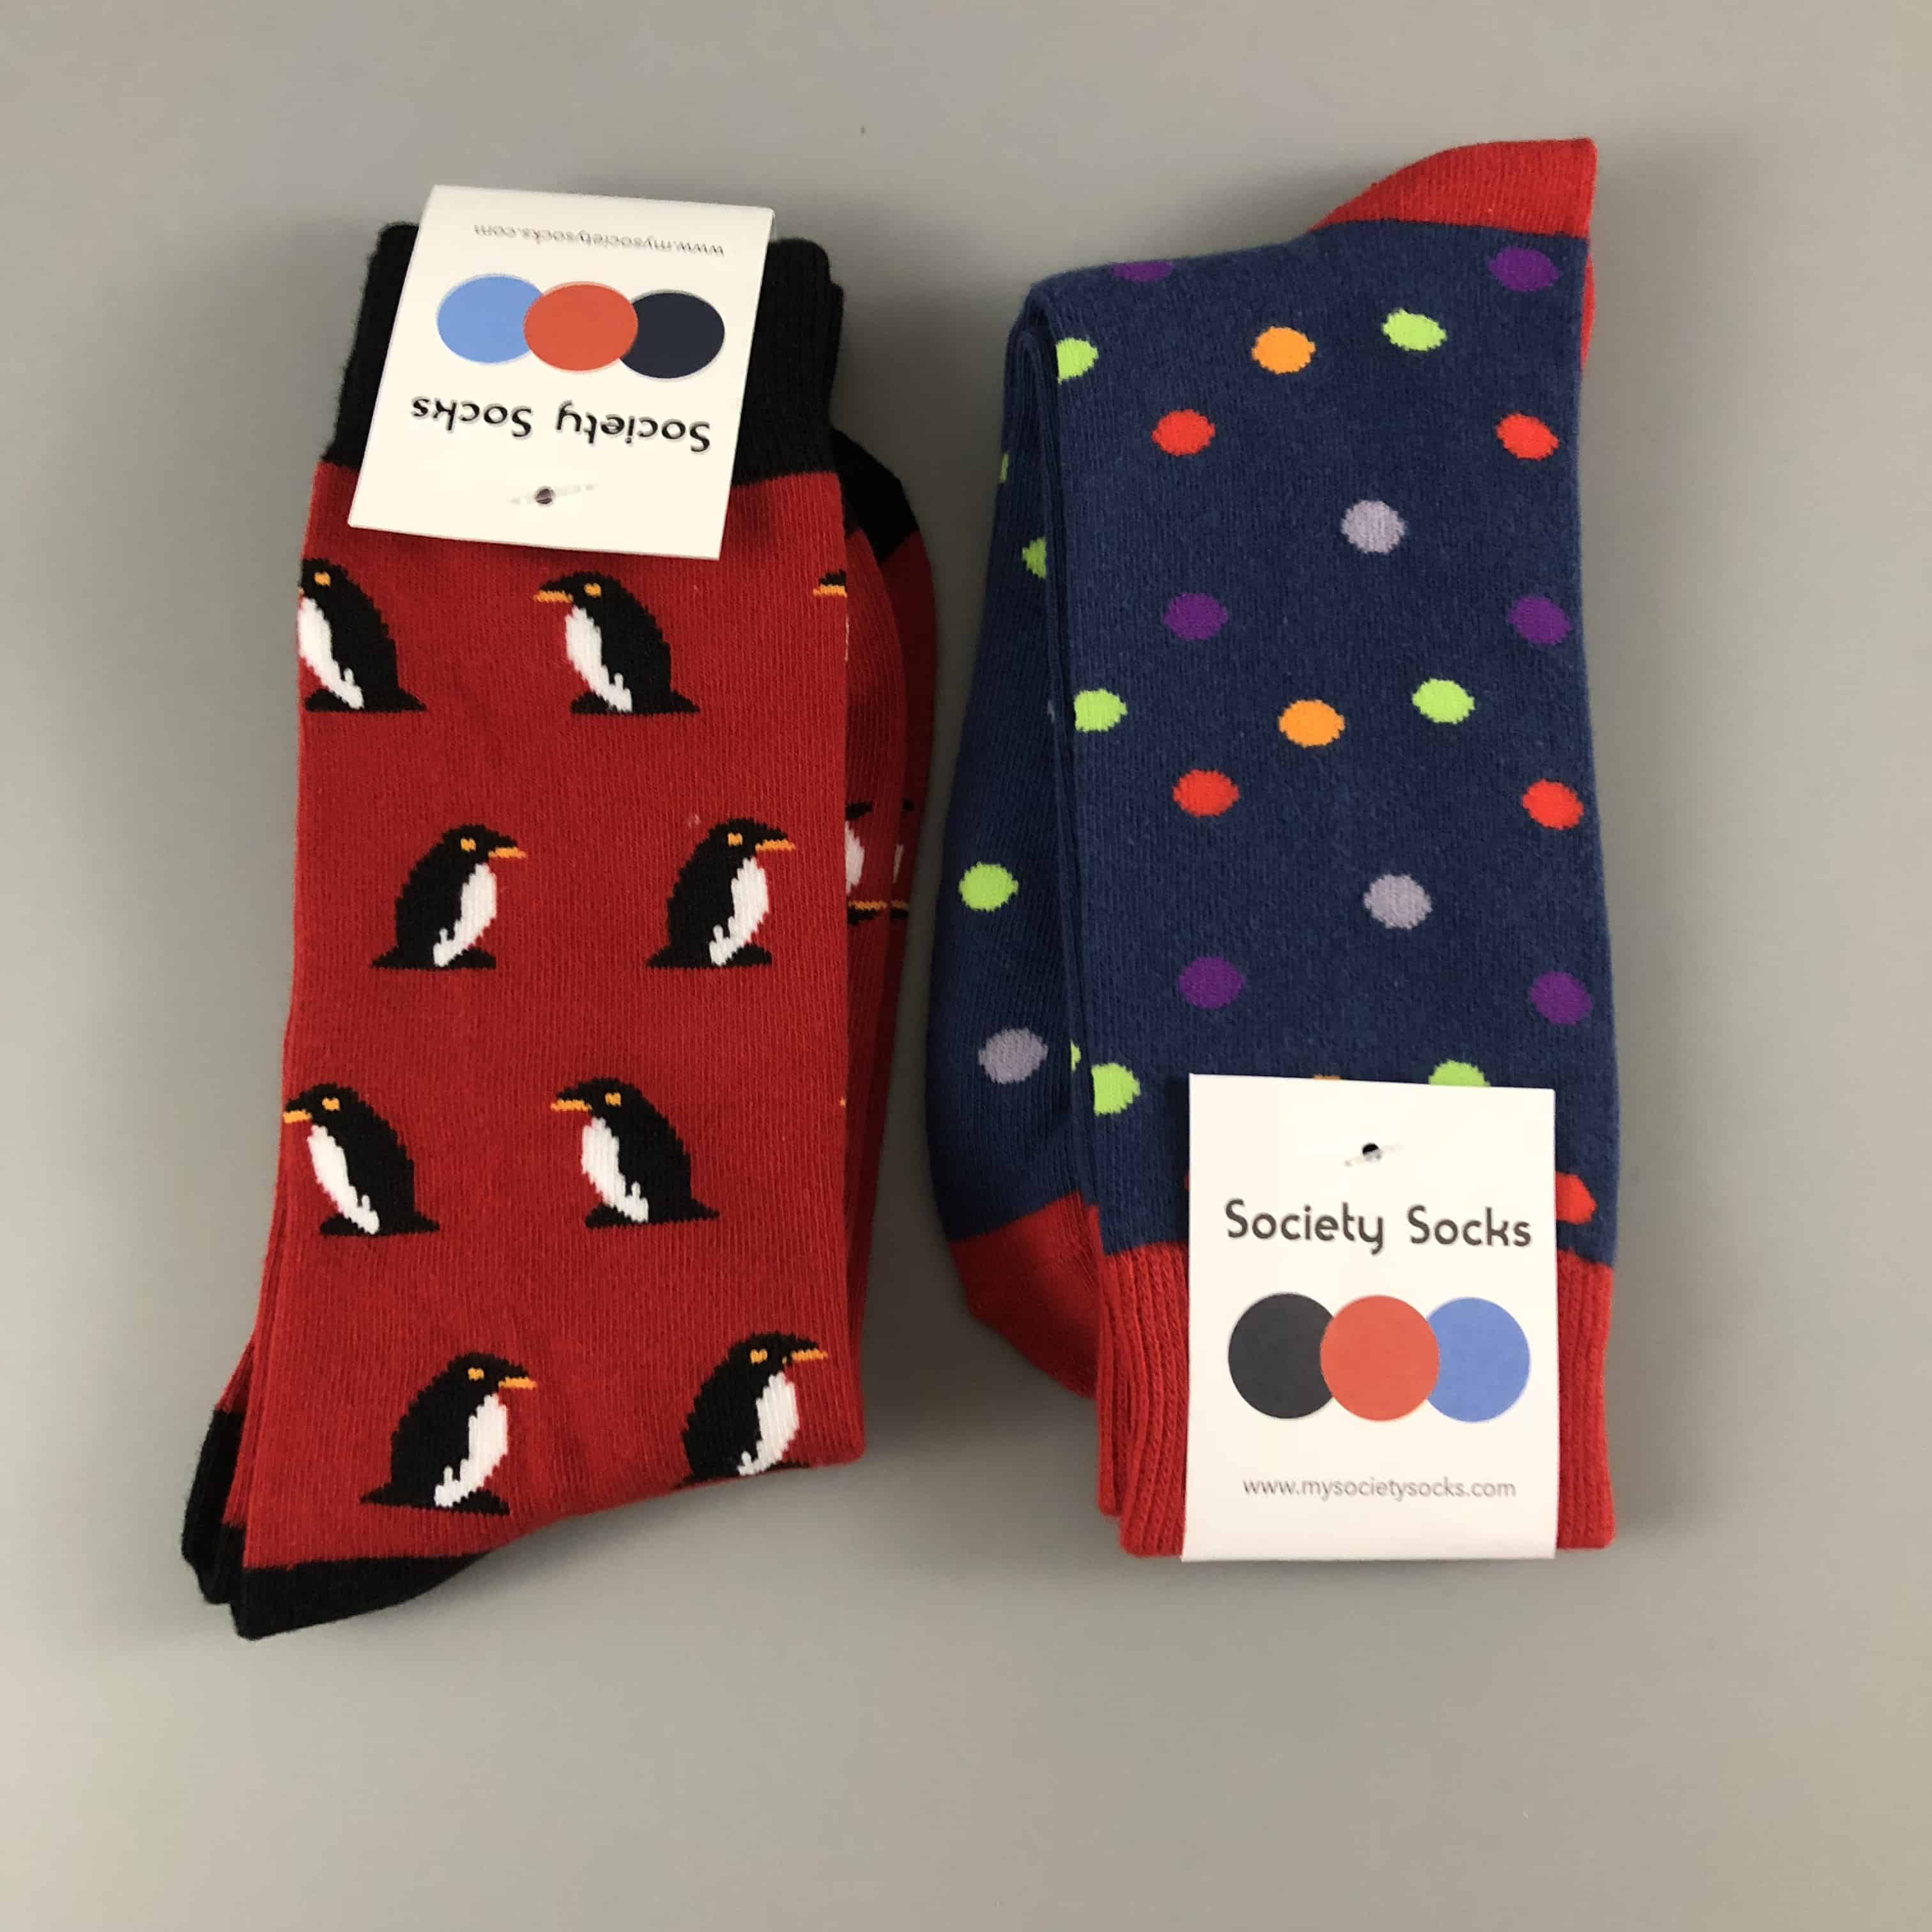 Society Socks January 2018 Subscription Box Review + 50% Off Coupon